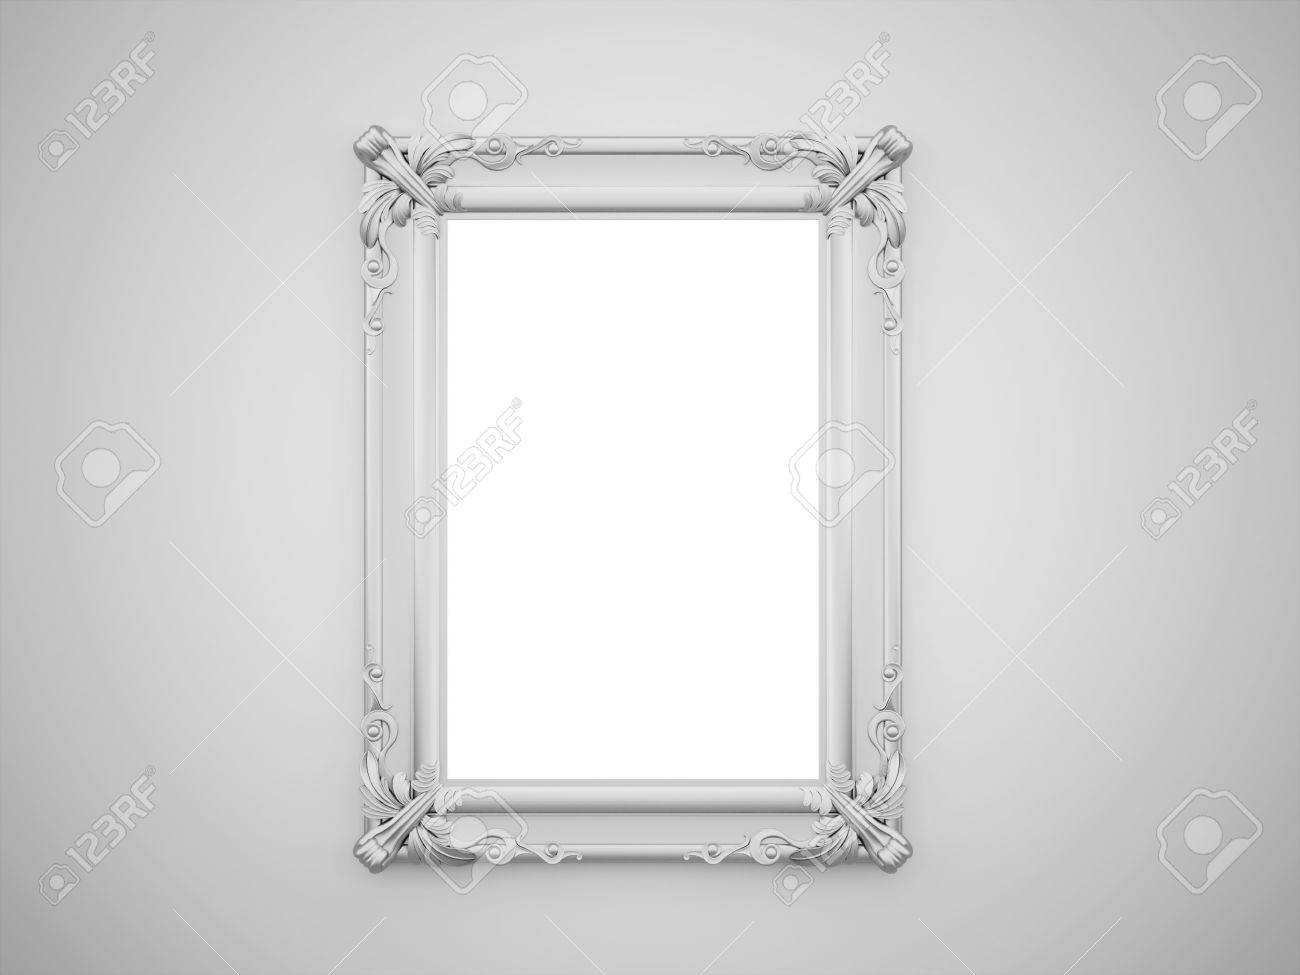 Vintage Mirror With Silver Frame On The Wall Rendered Stock Photo ...